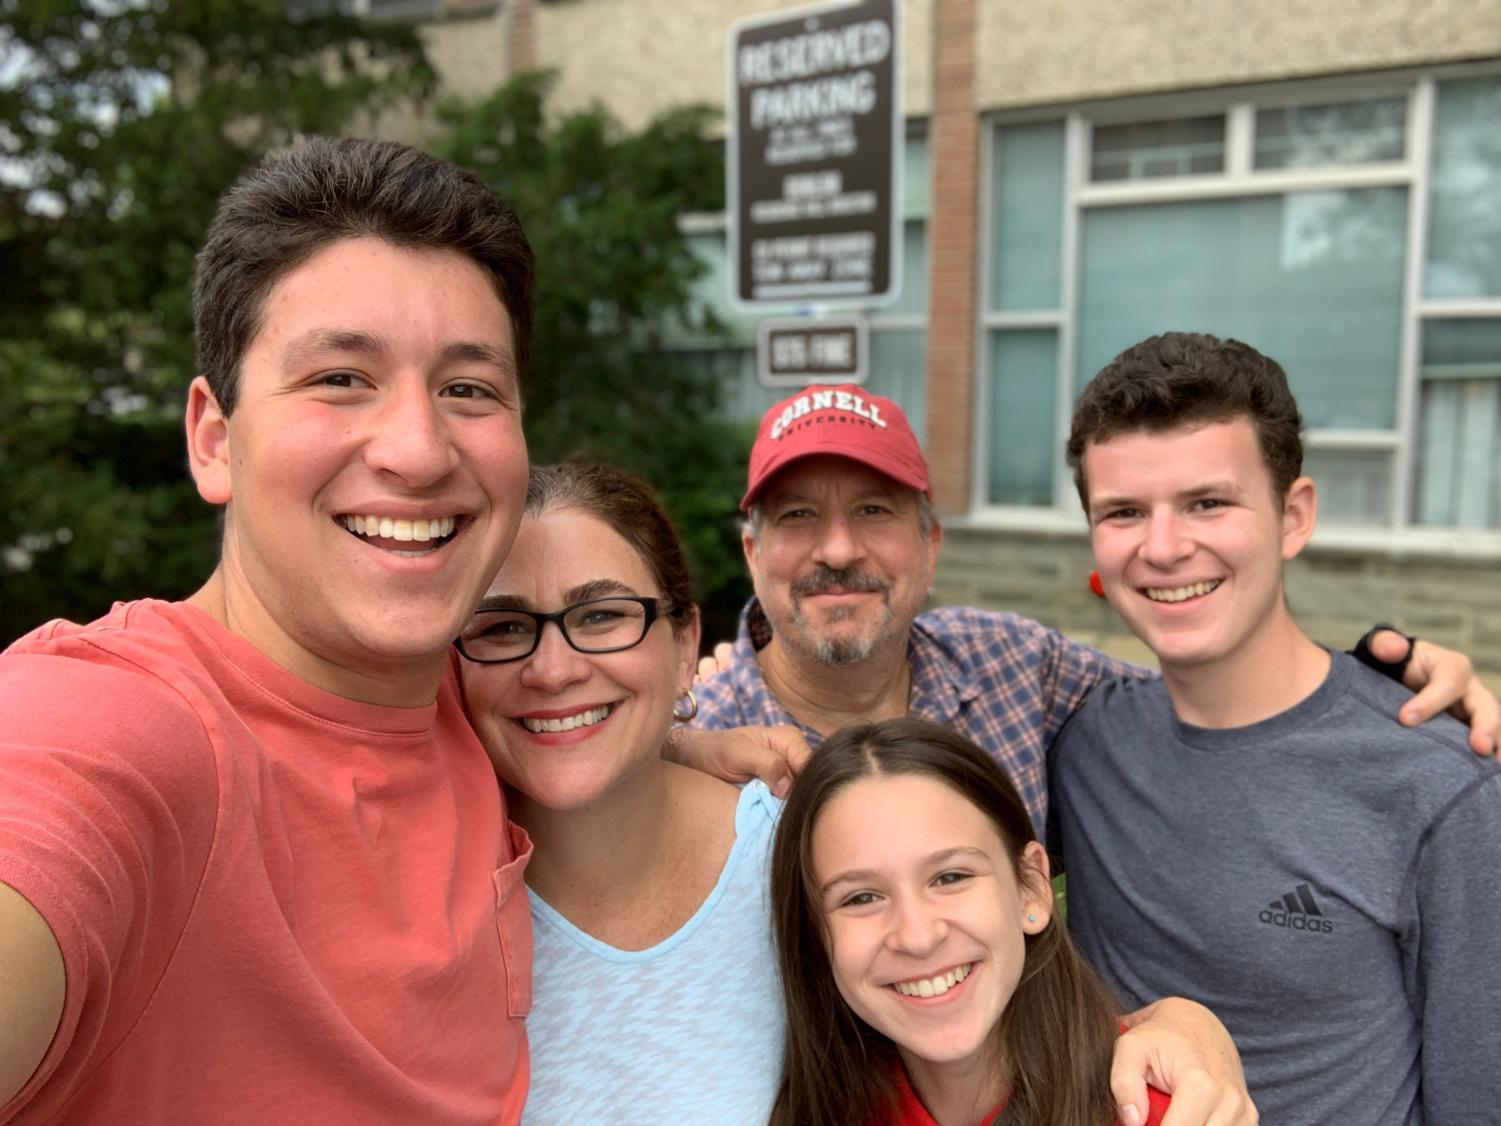 The+Rider+family+drops+off+their+oldest%2C+Bo+at+Cornell+Universty+for+his+orientation.+